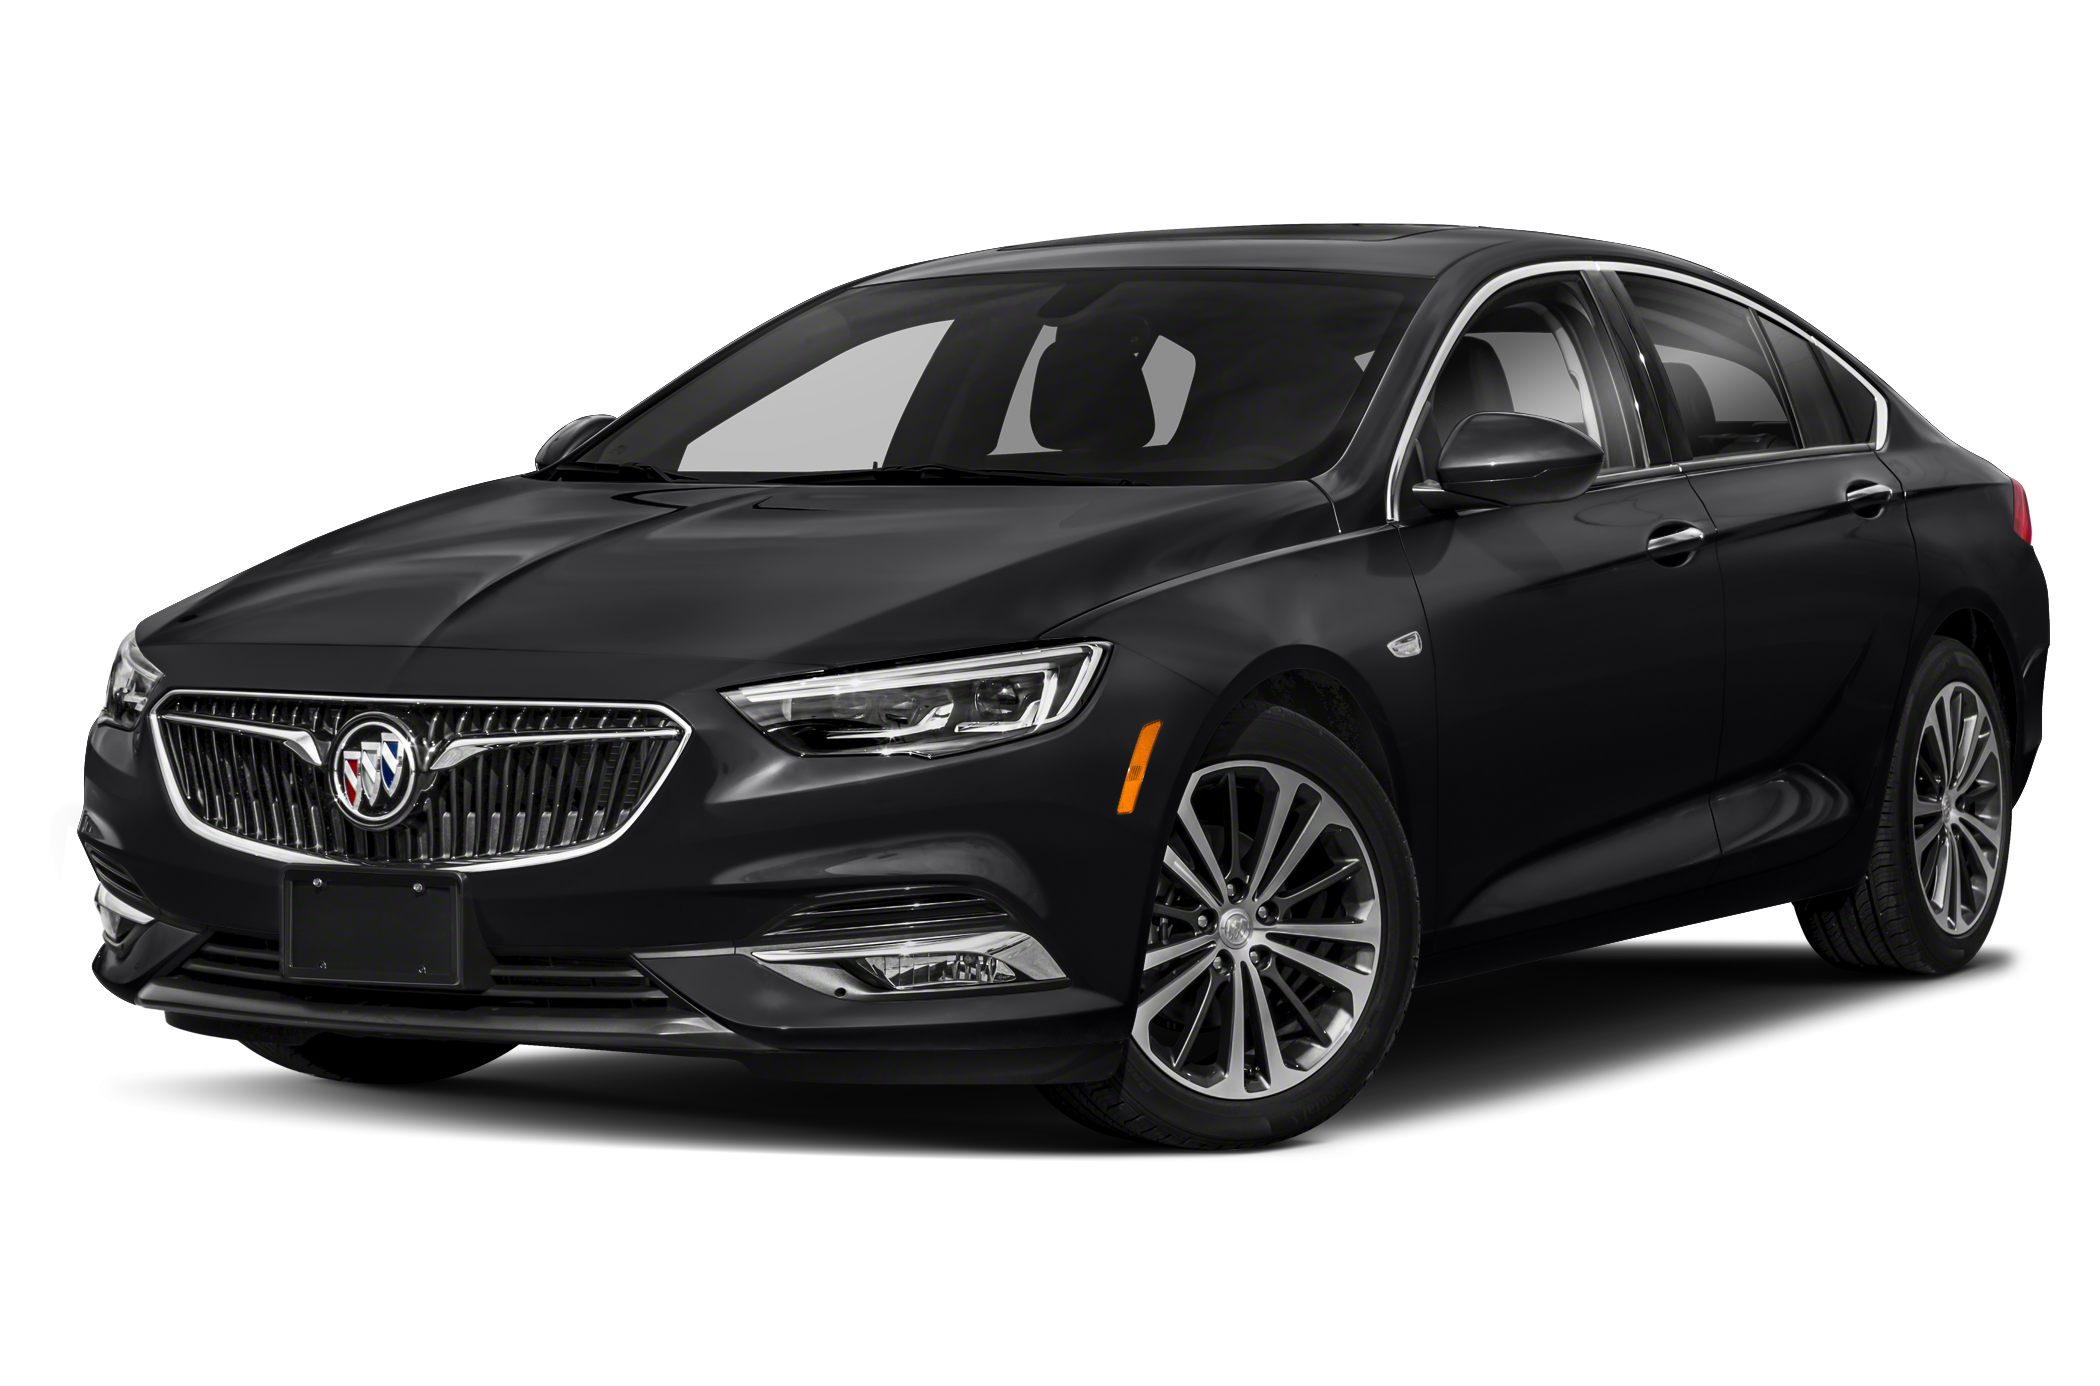 2020 Buick Regal Deals, Prices, Incentives & Leases 2021 Buick Verano Maintenance, Lease Deals, Gas Type